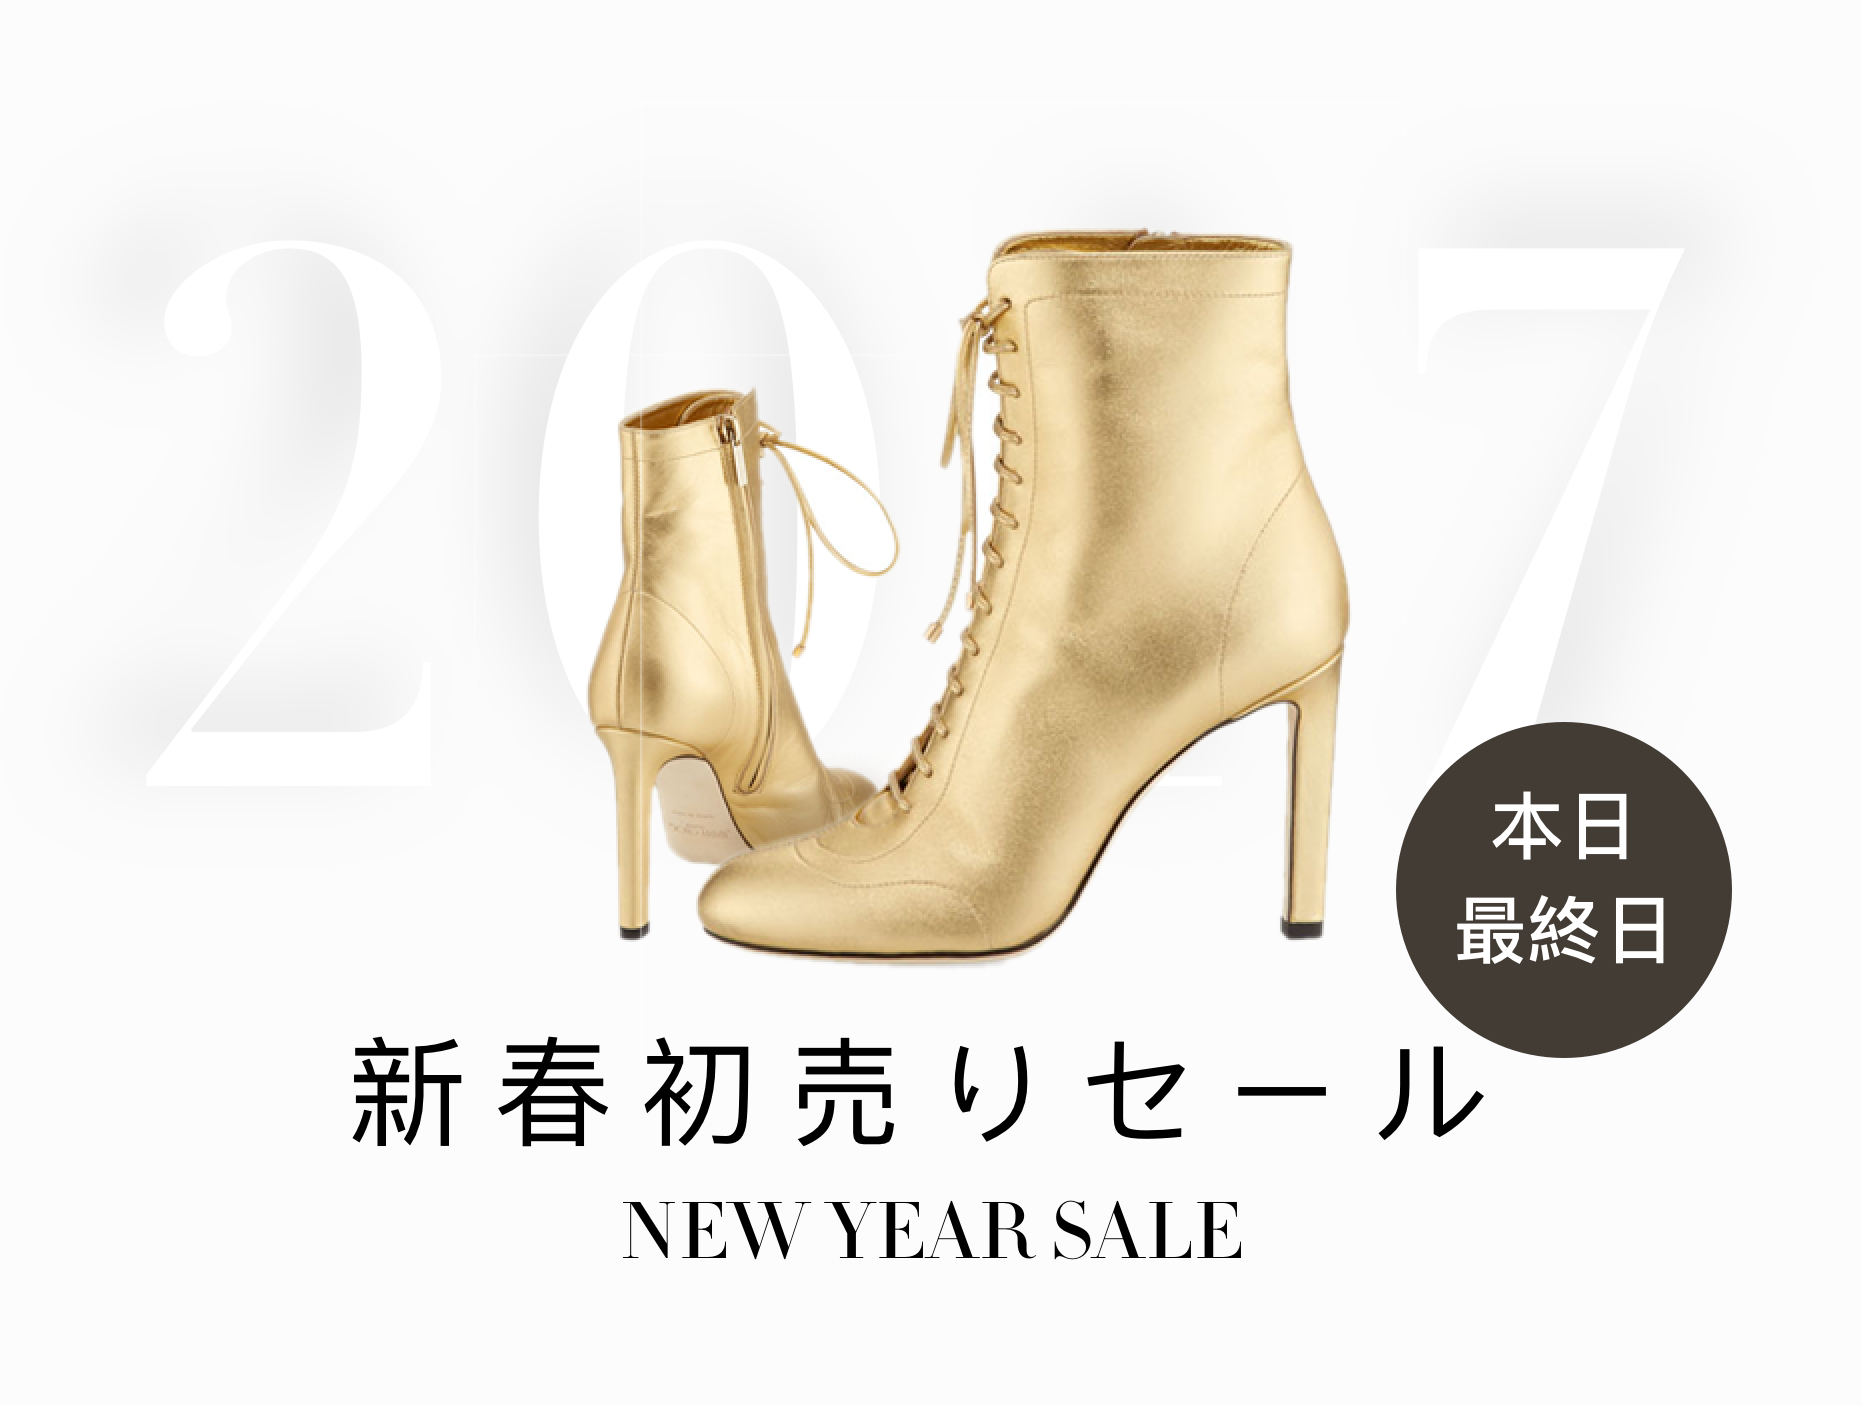 Pair of gold high heel boots with Japanese text promoting sale